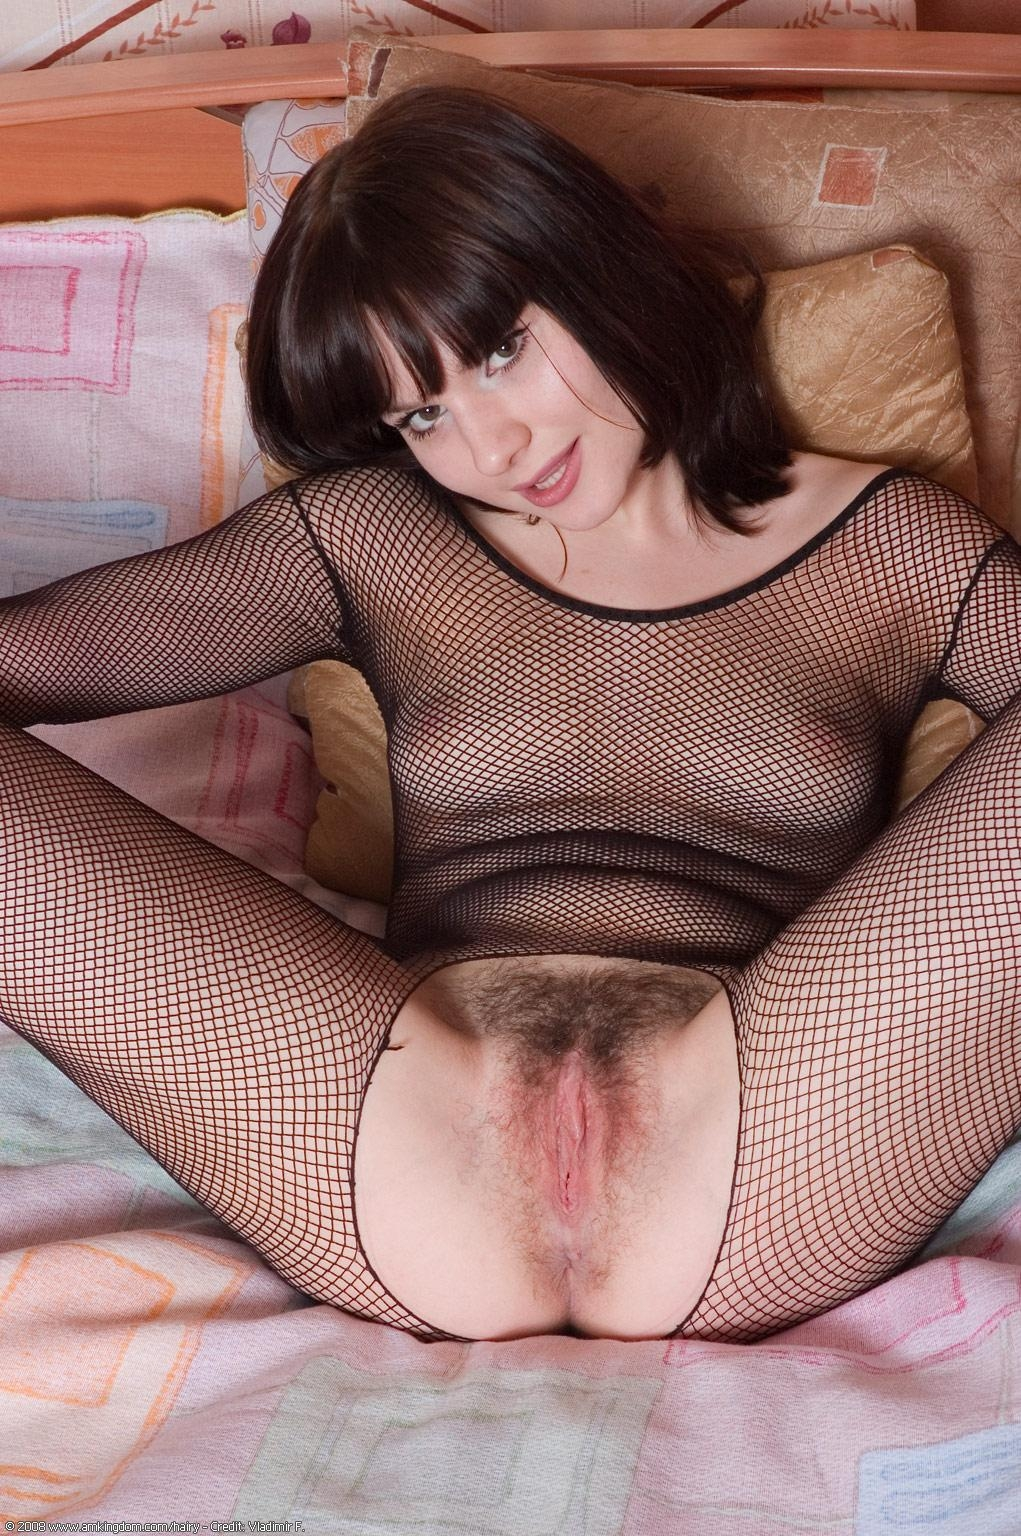 Dark haired amateur plays with her hairy pussy in a crotchless bodystocking